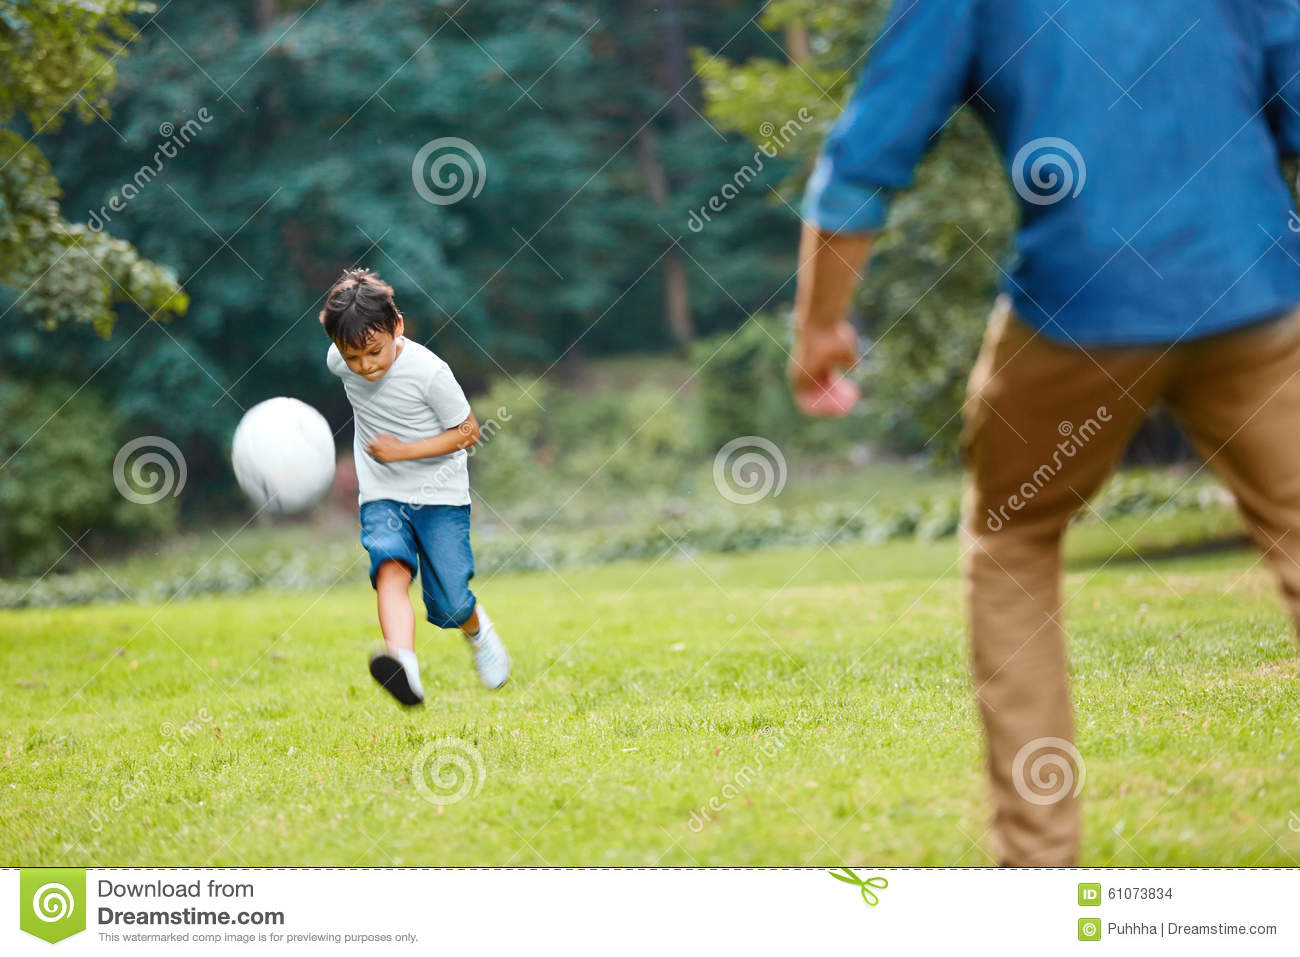 Summer Football. Dad And Son Playing Soccer. Stock Photo